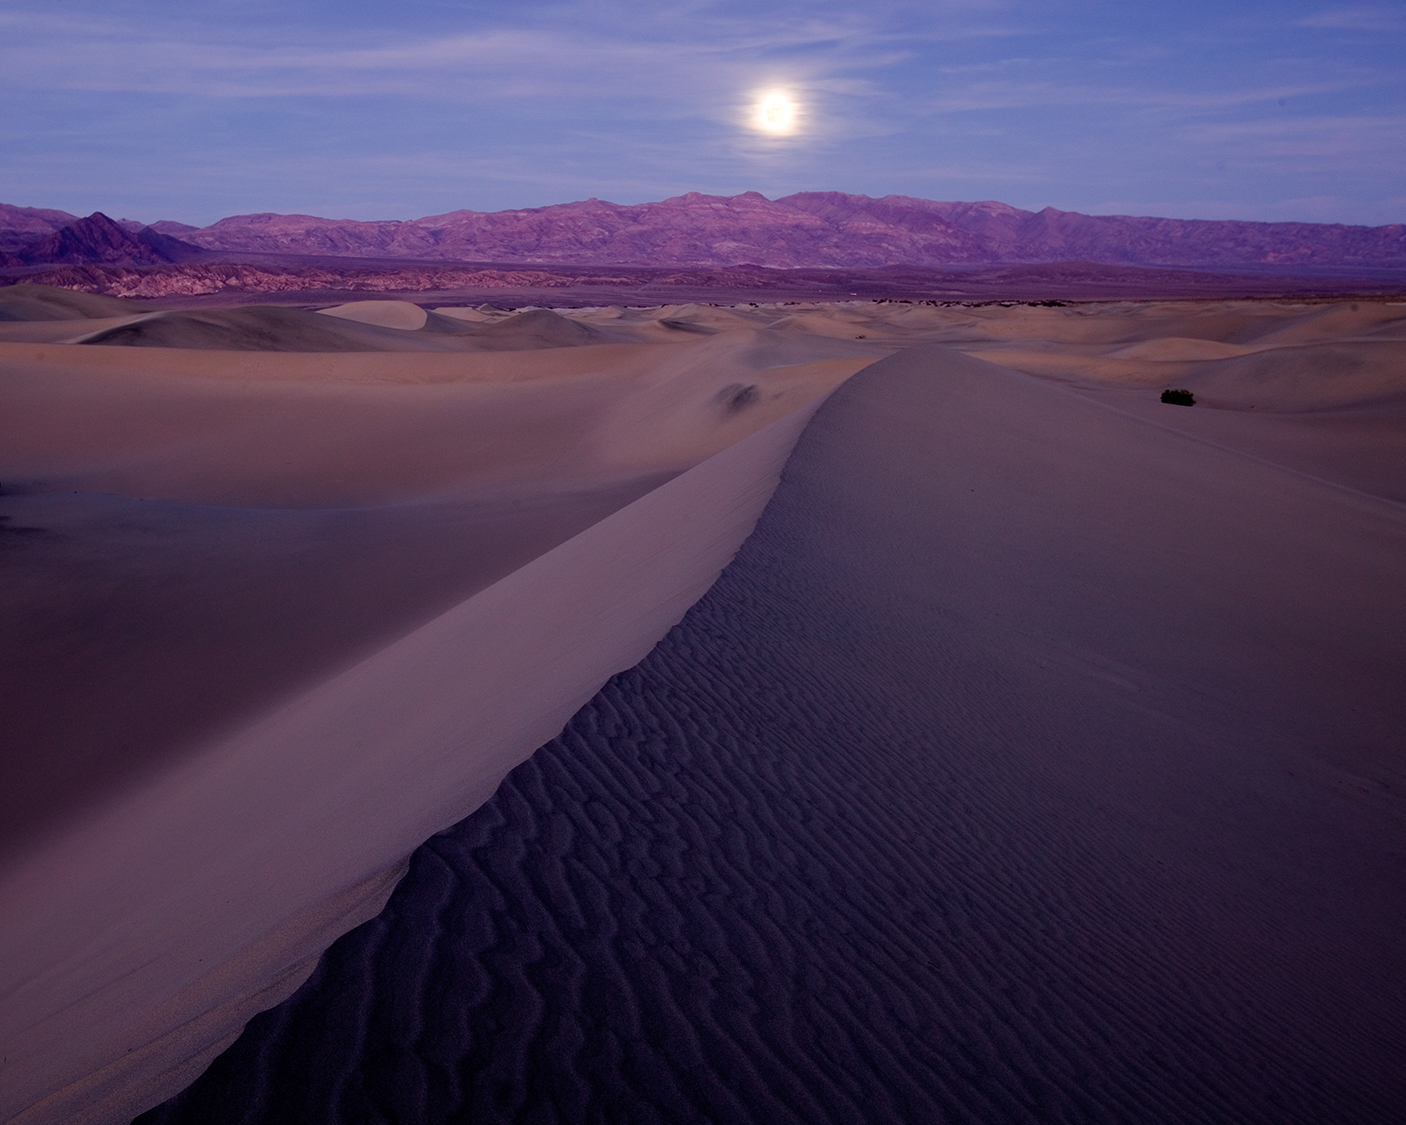 Day before full moon, Death Valley National Park. © 2005 Tim Cooper. Canon 1Ds, 16-35mm lens at 31mm. 4 seconds, f/8, ISO 100.